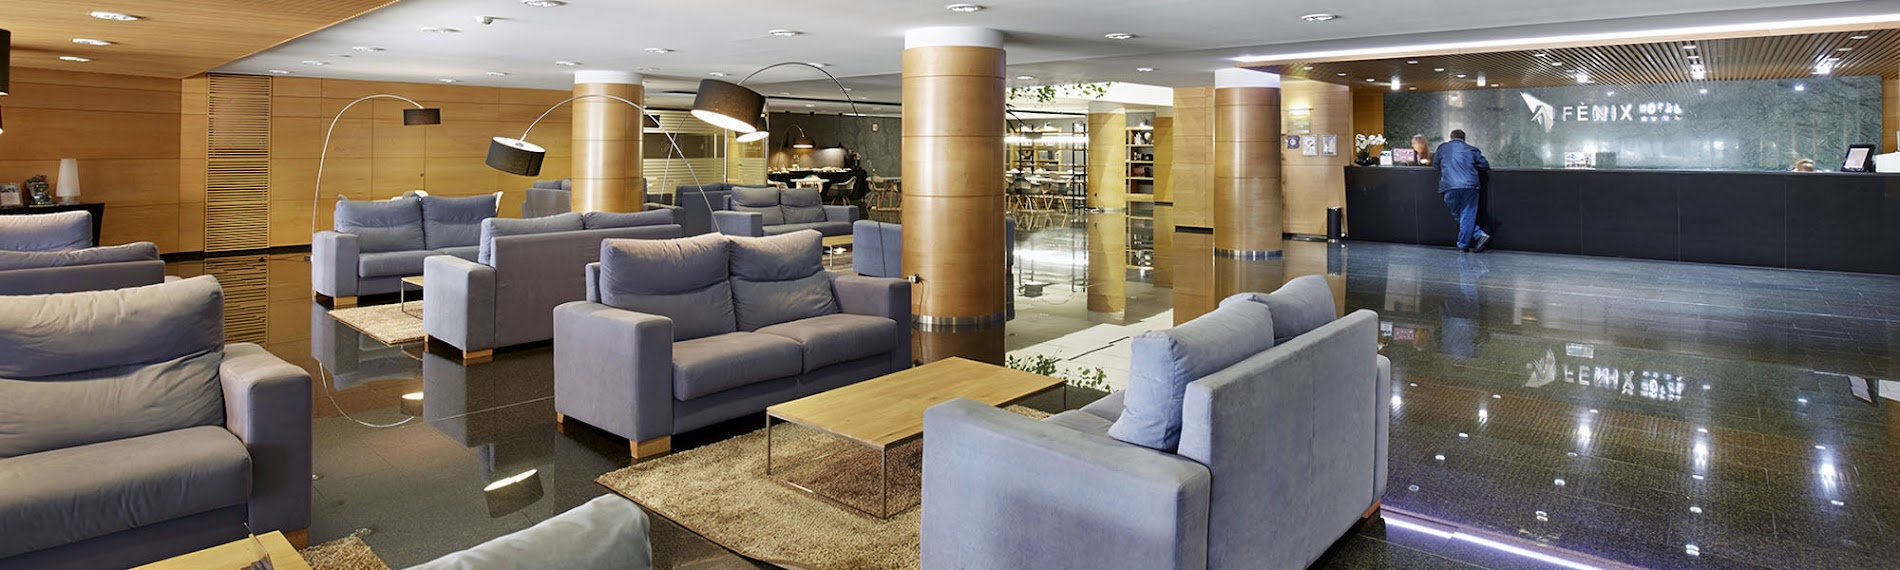 Reception Hotel Fenix 4 *